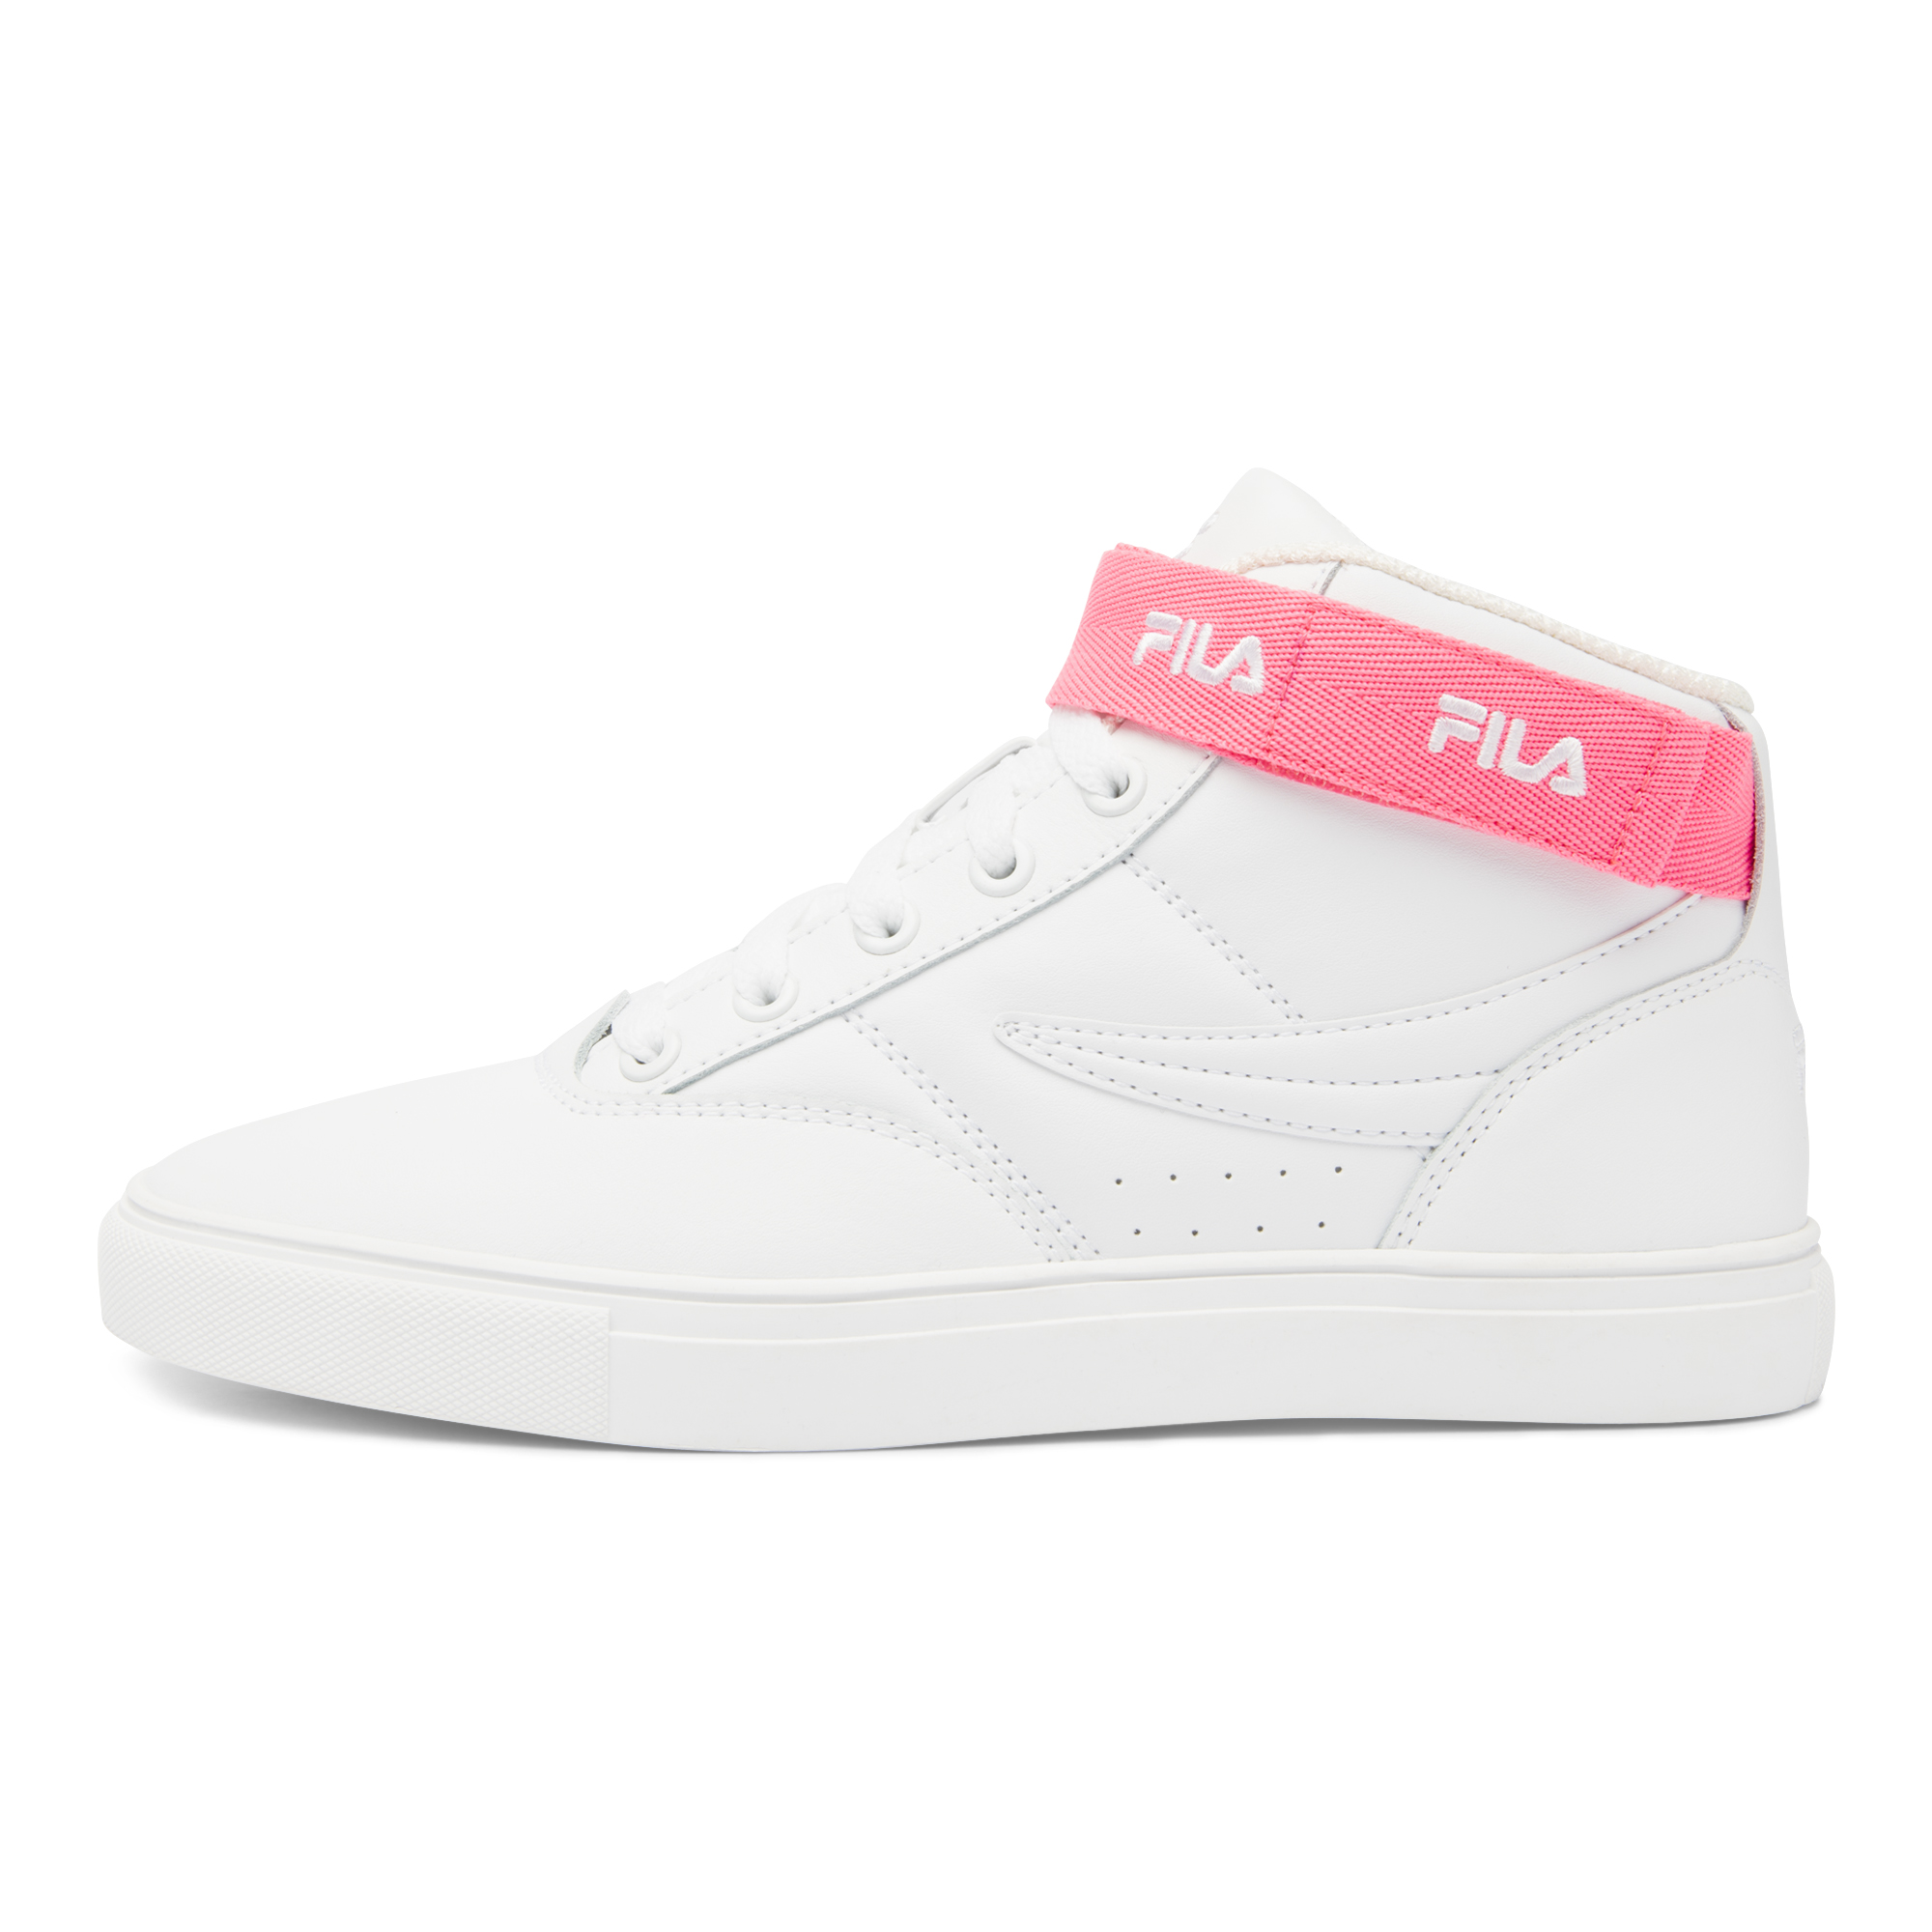 Fila Women's Filario Casual Shoes